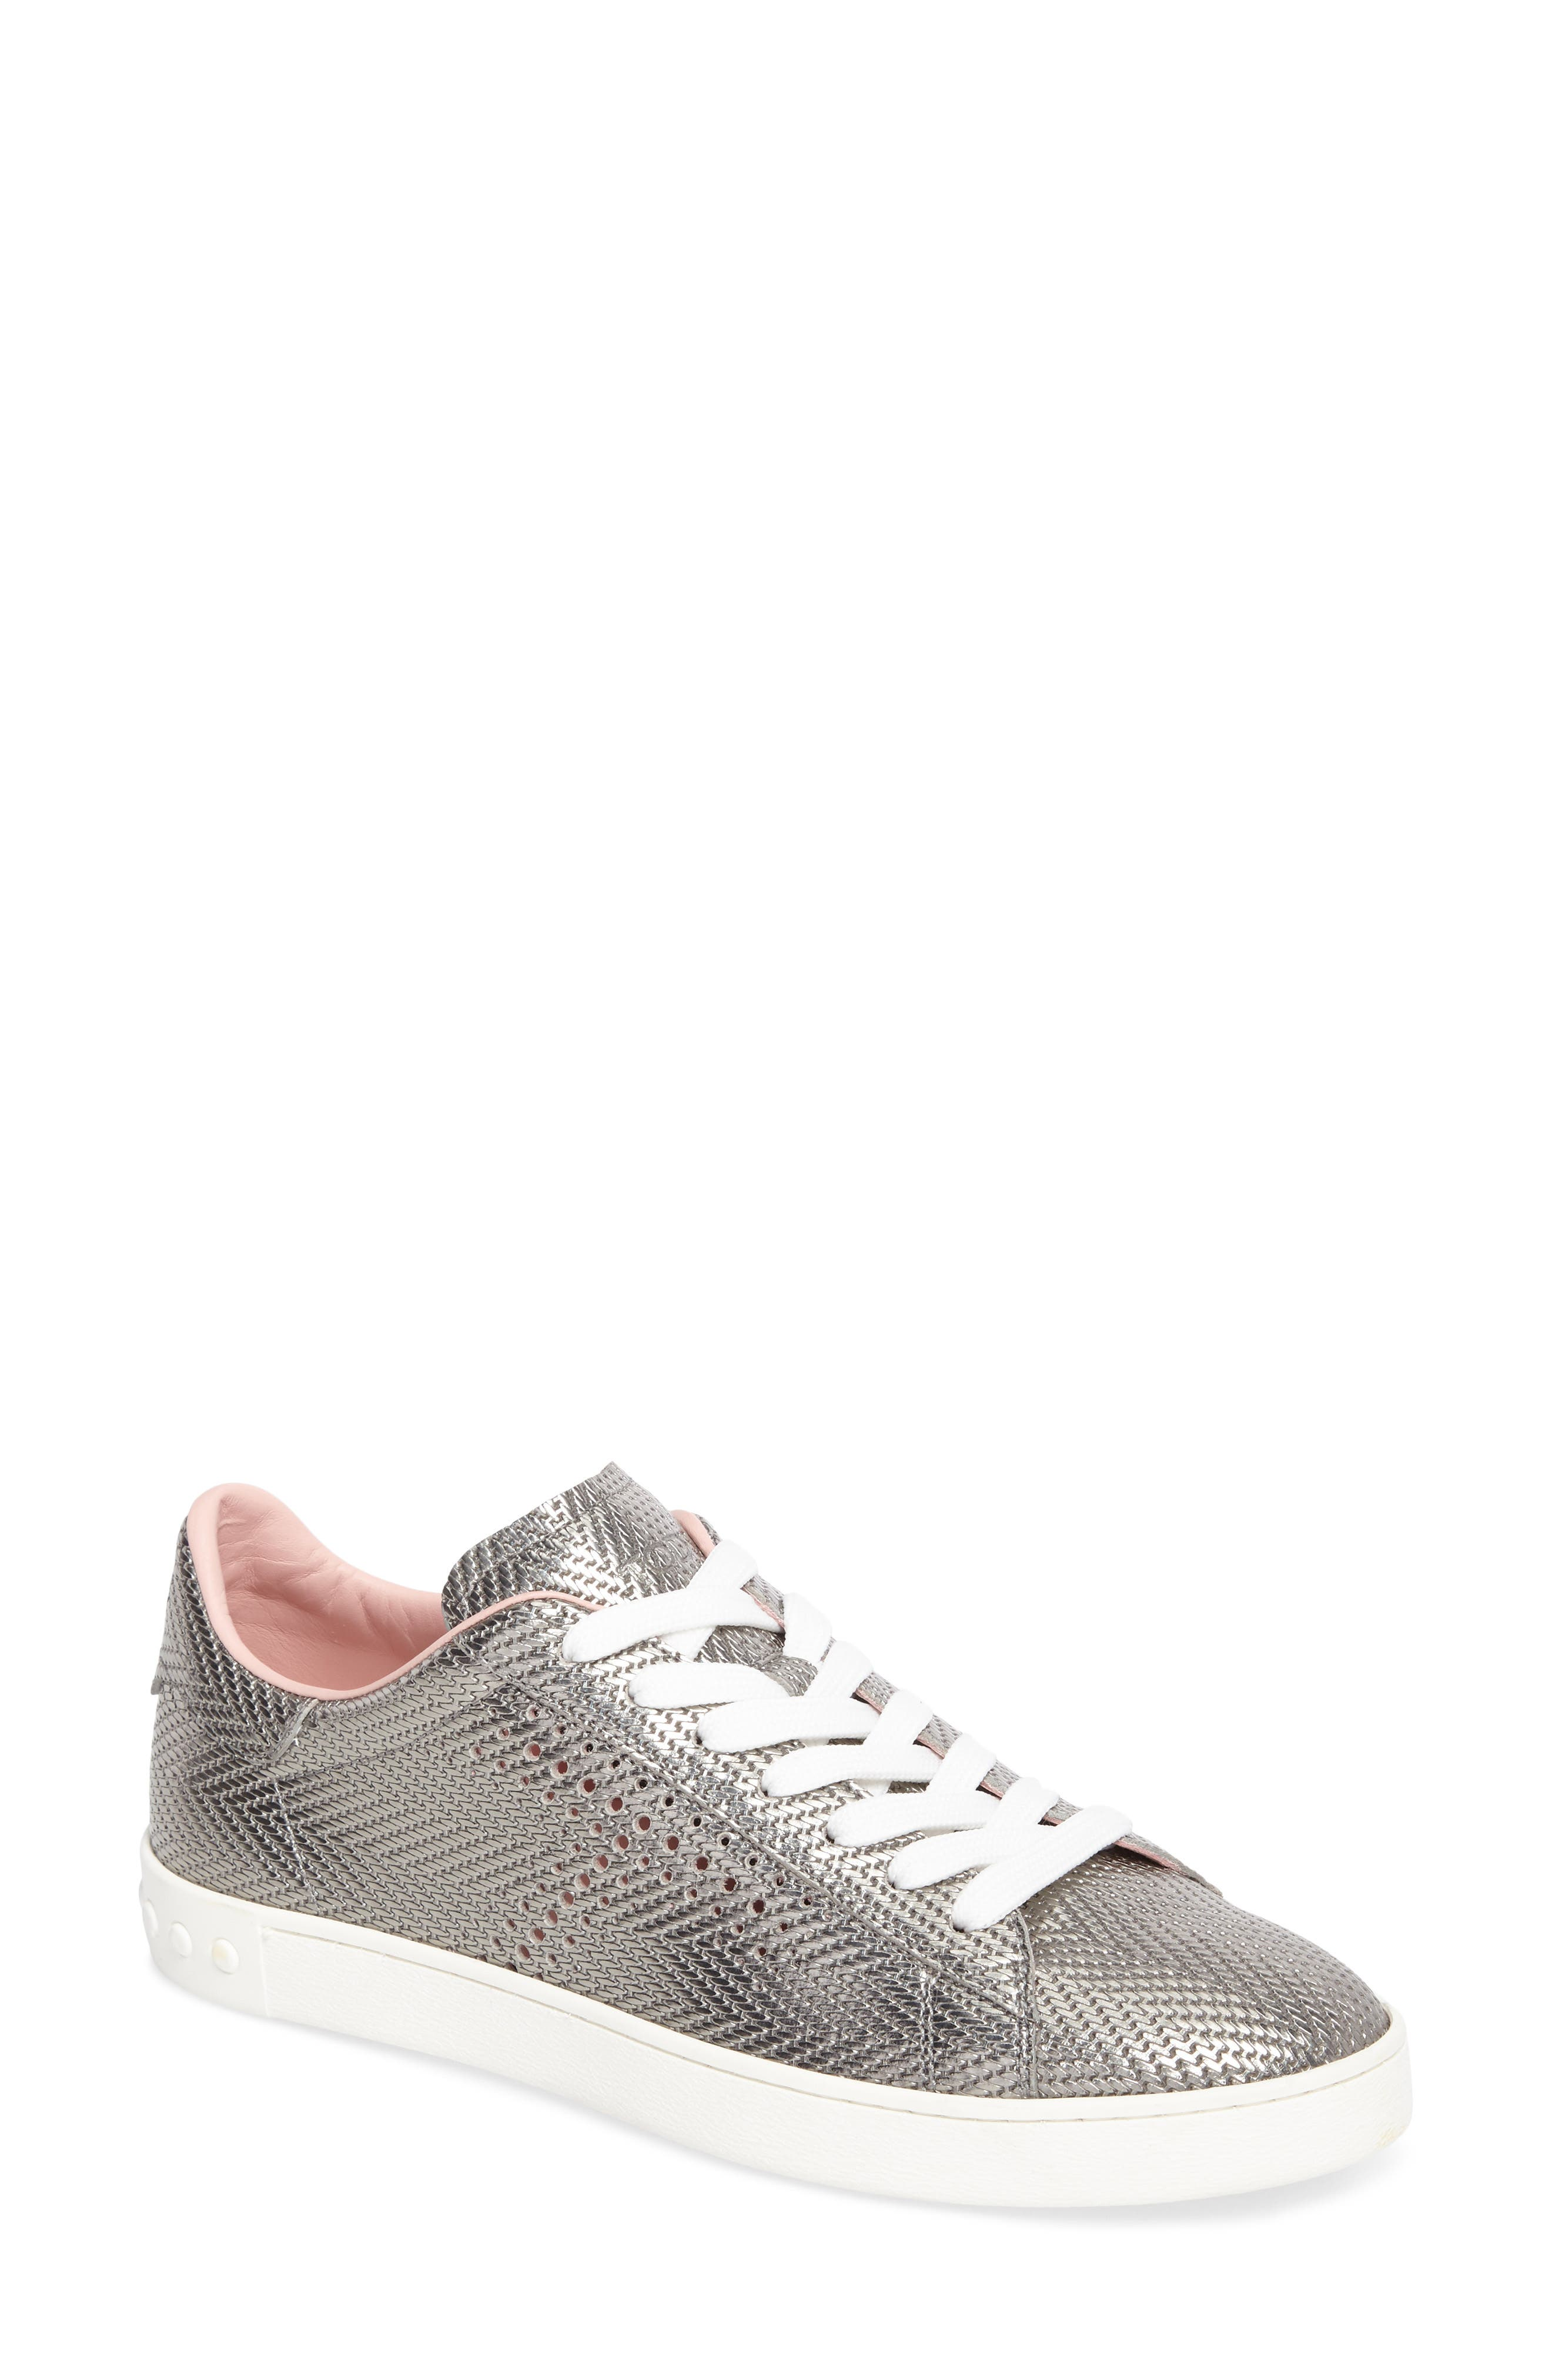 Main Image - Tod's Perforated T Sneaker (Women)